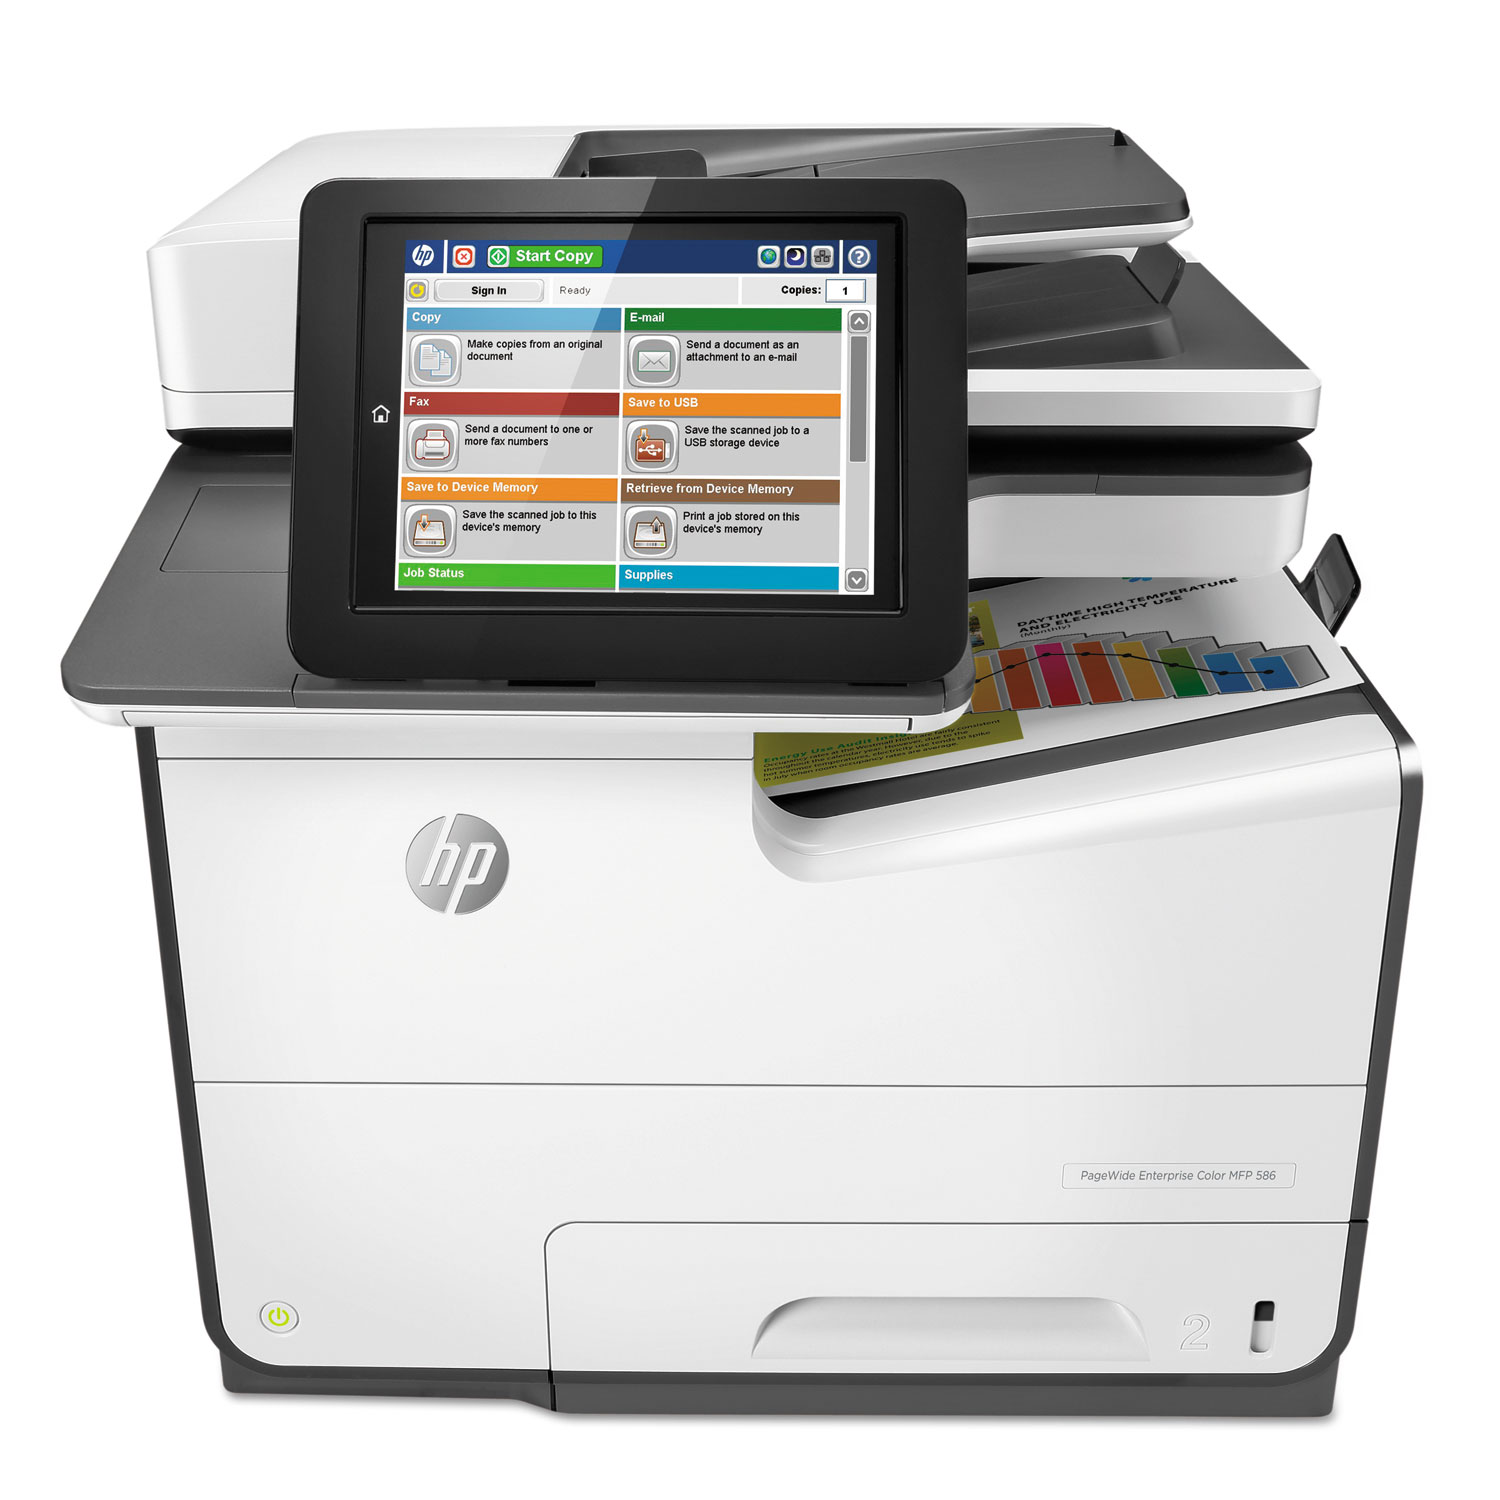 PageWide Enterprise Color MFP 586f, Copy/Fax/Print/Scan